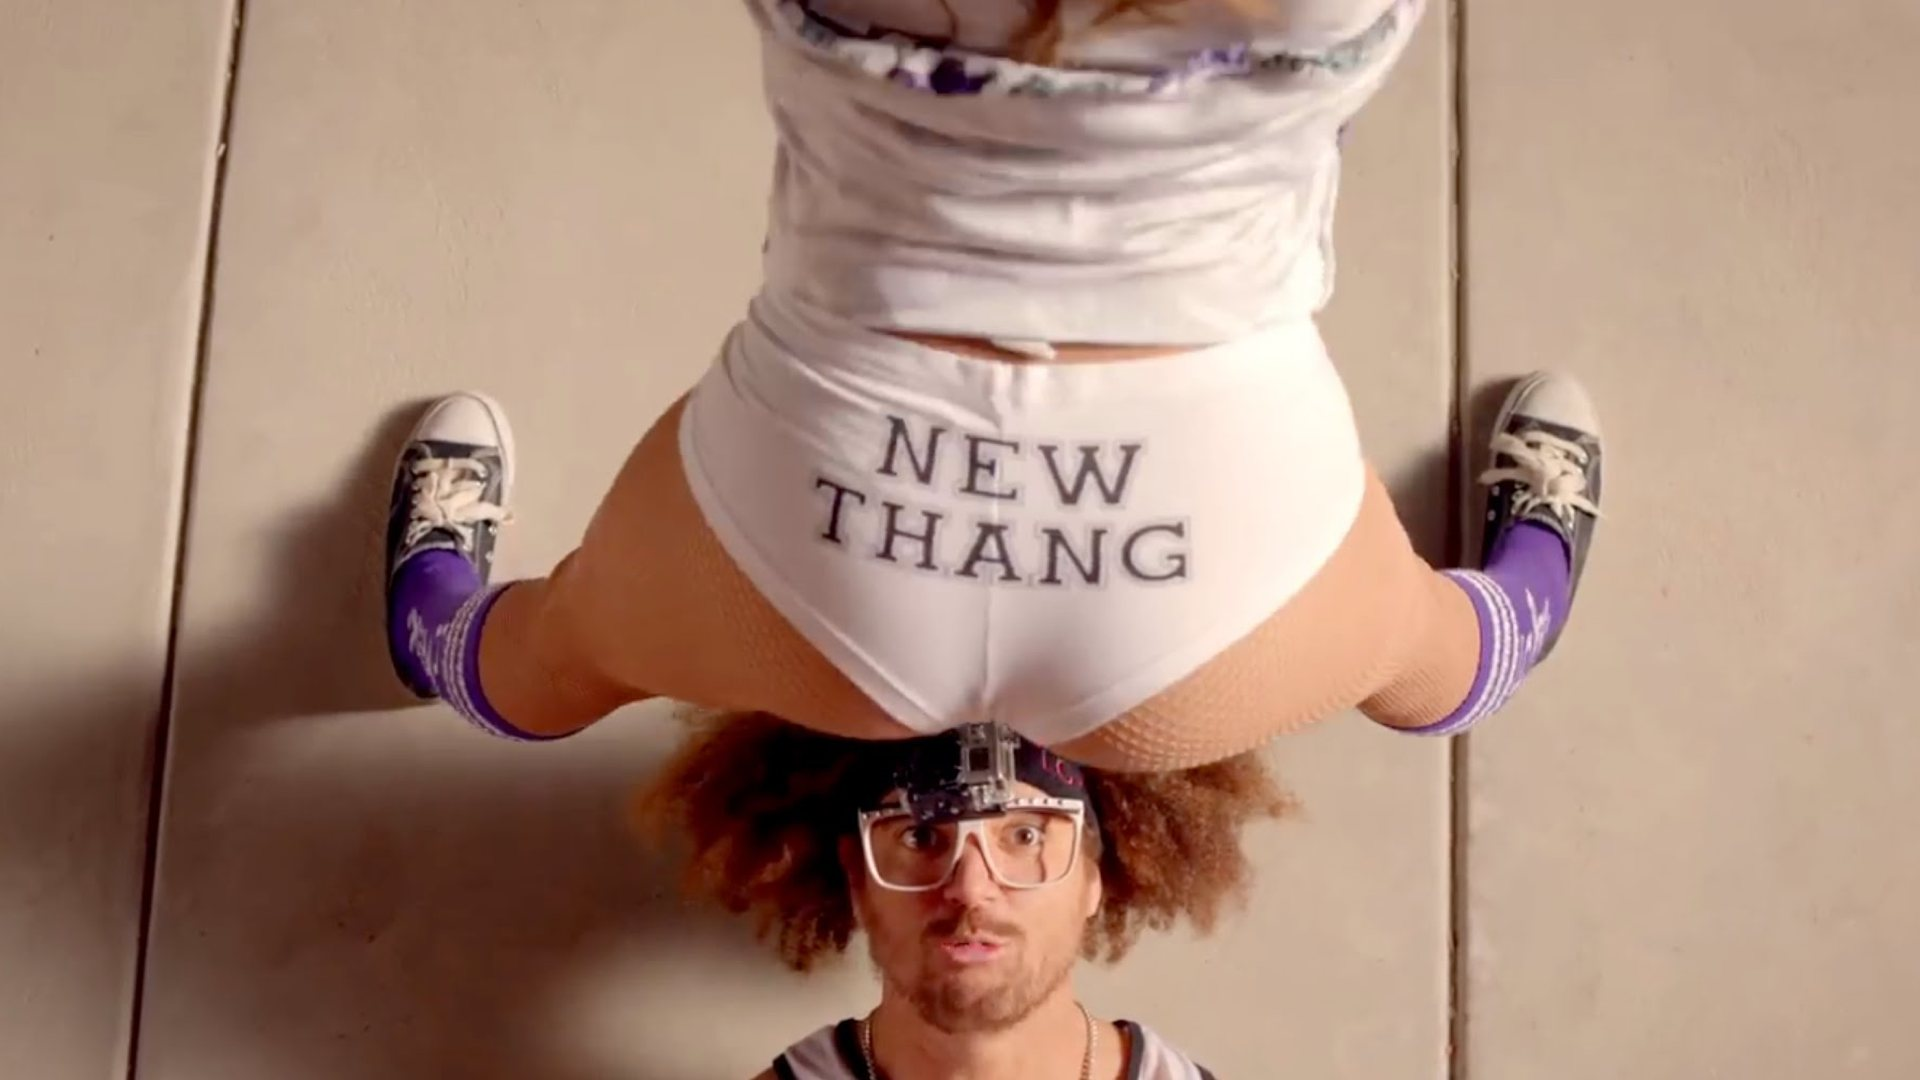 New Thang por Redfoo